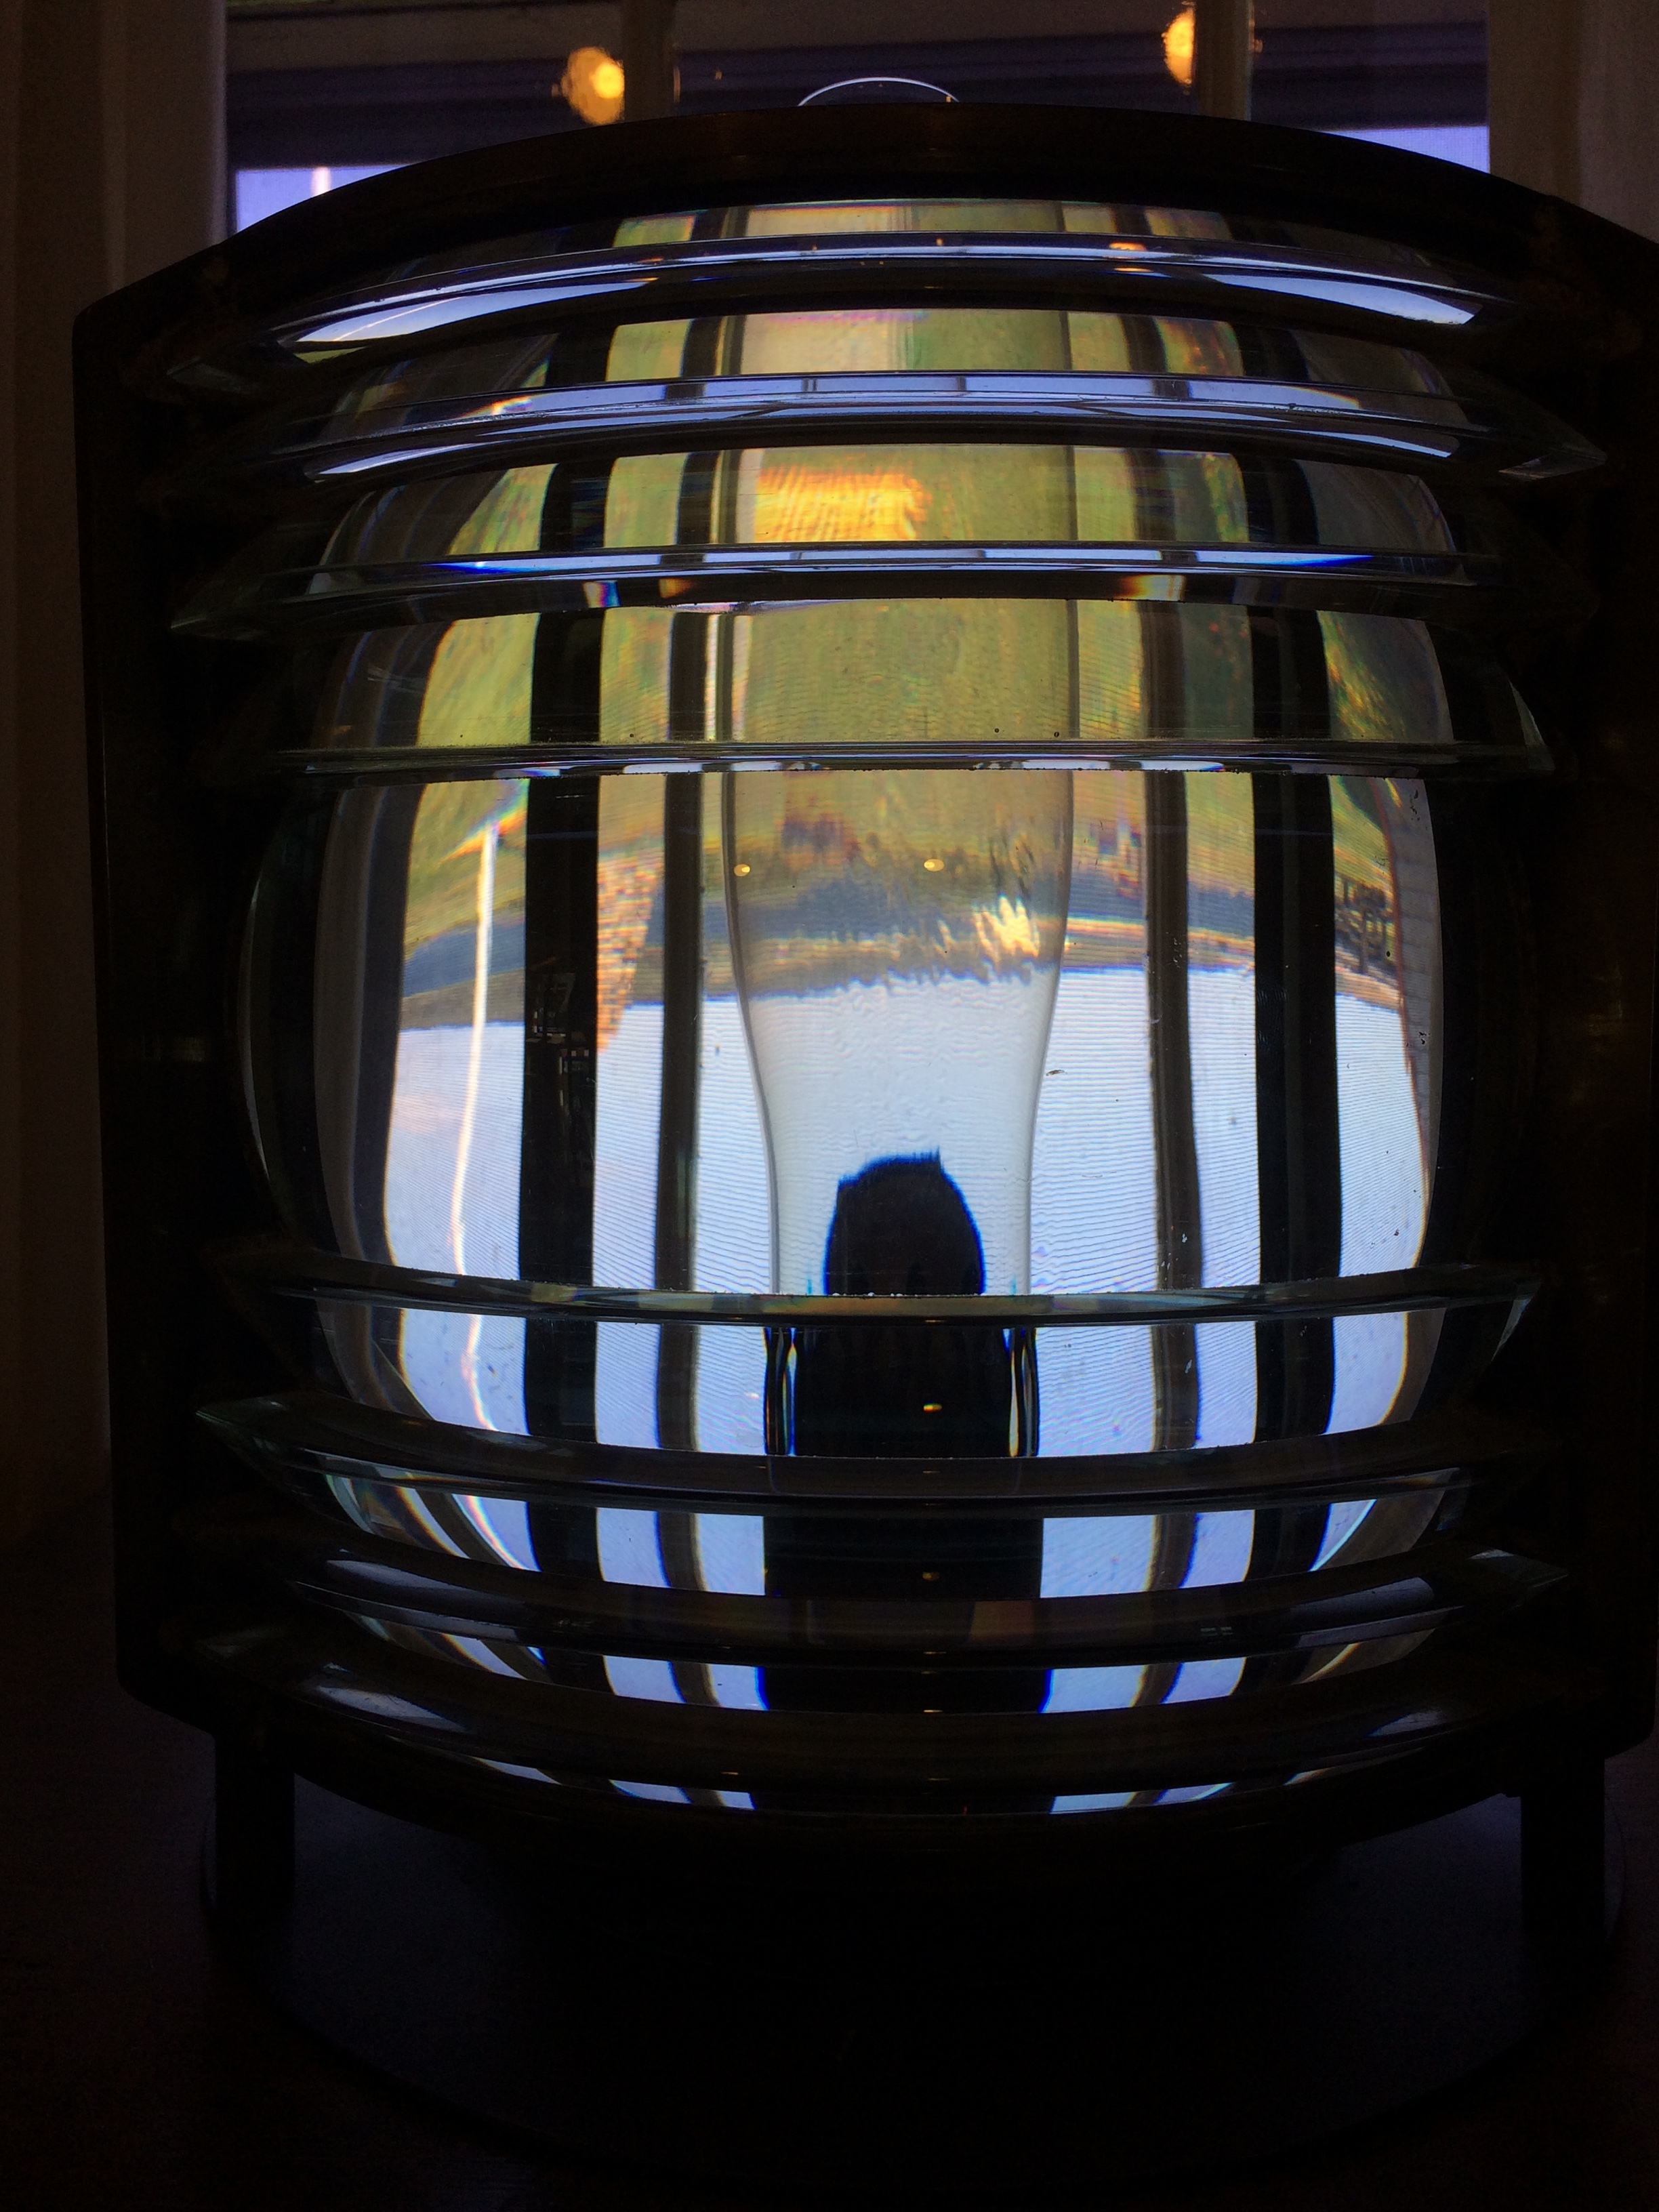 The museum is housed in the LaHave Lighthouse Keeper's original home. Although the lighthouse is now gone, the proud history of its vital role in helping sailors navigate the dangerous seas remains.